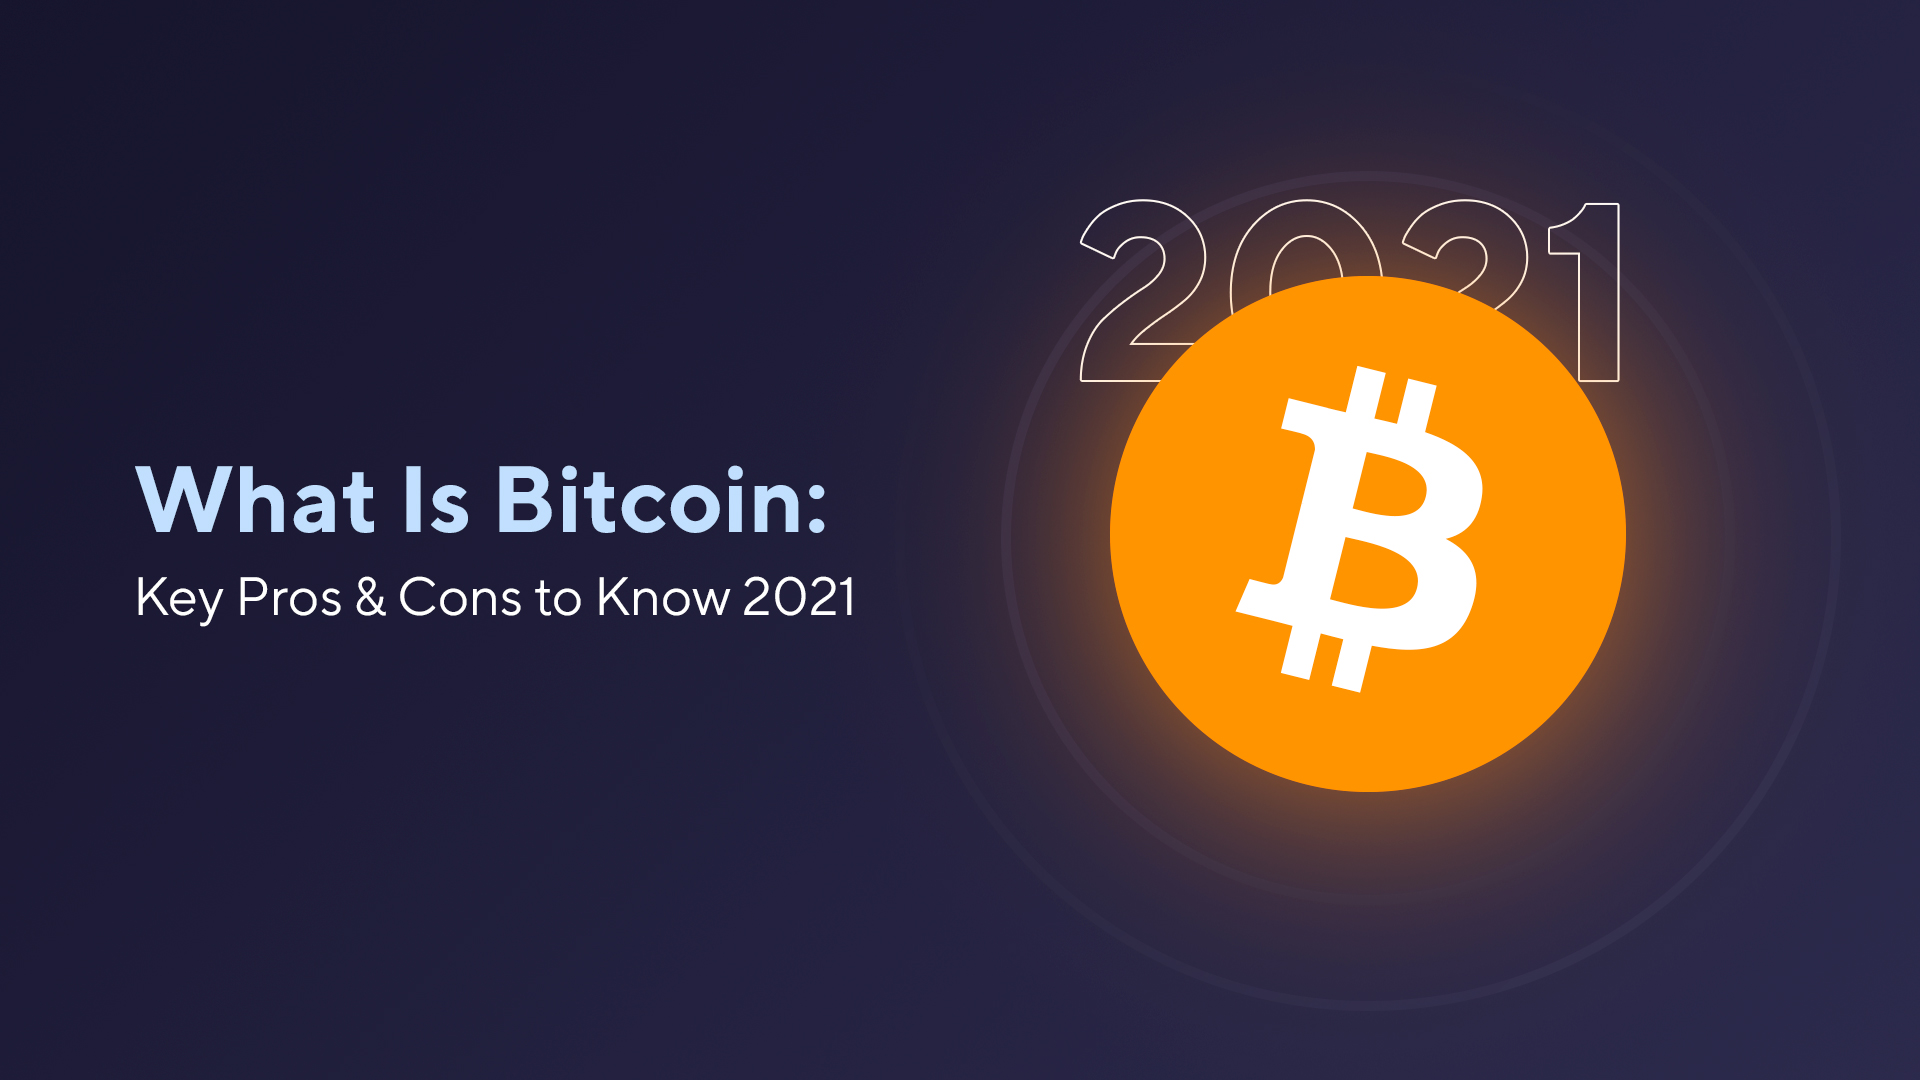 What Is Bitcoin: Key Pros & Cons to Know 2021